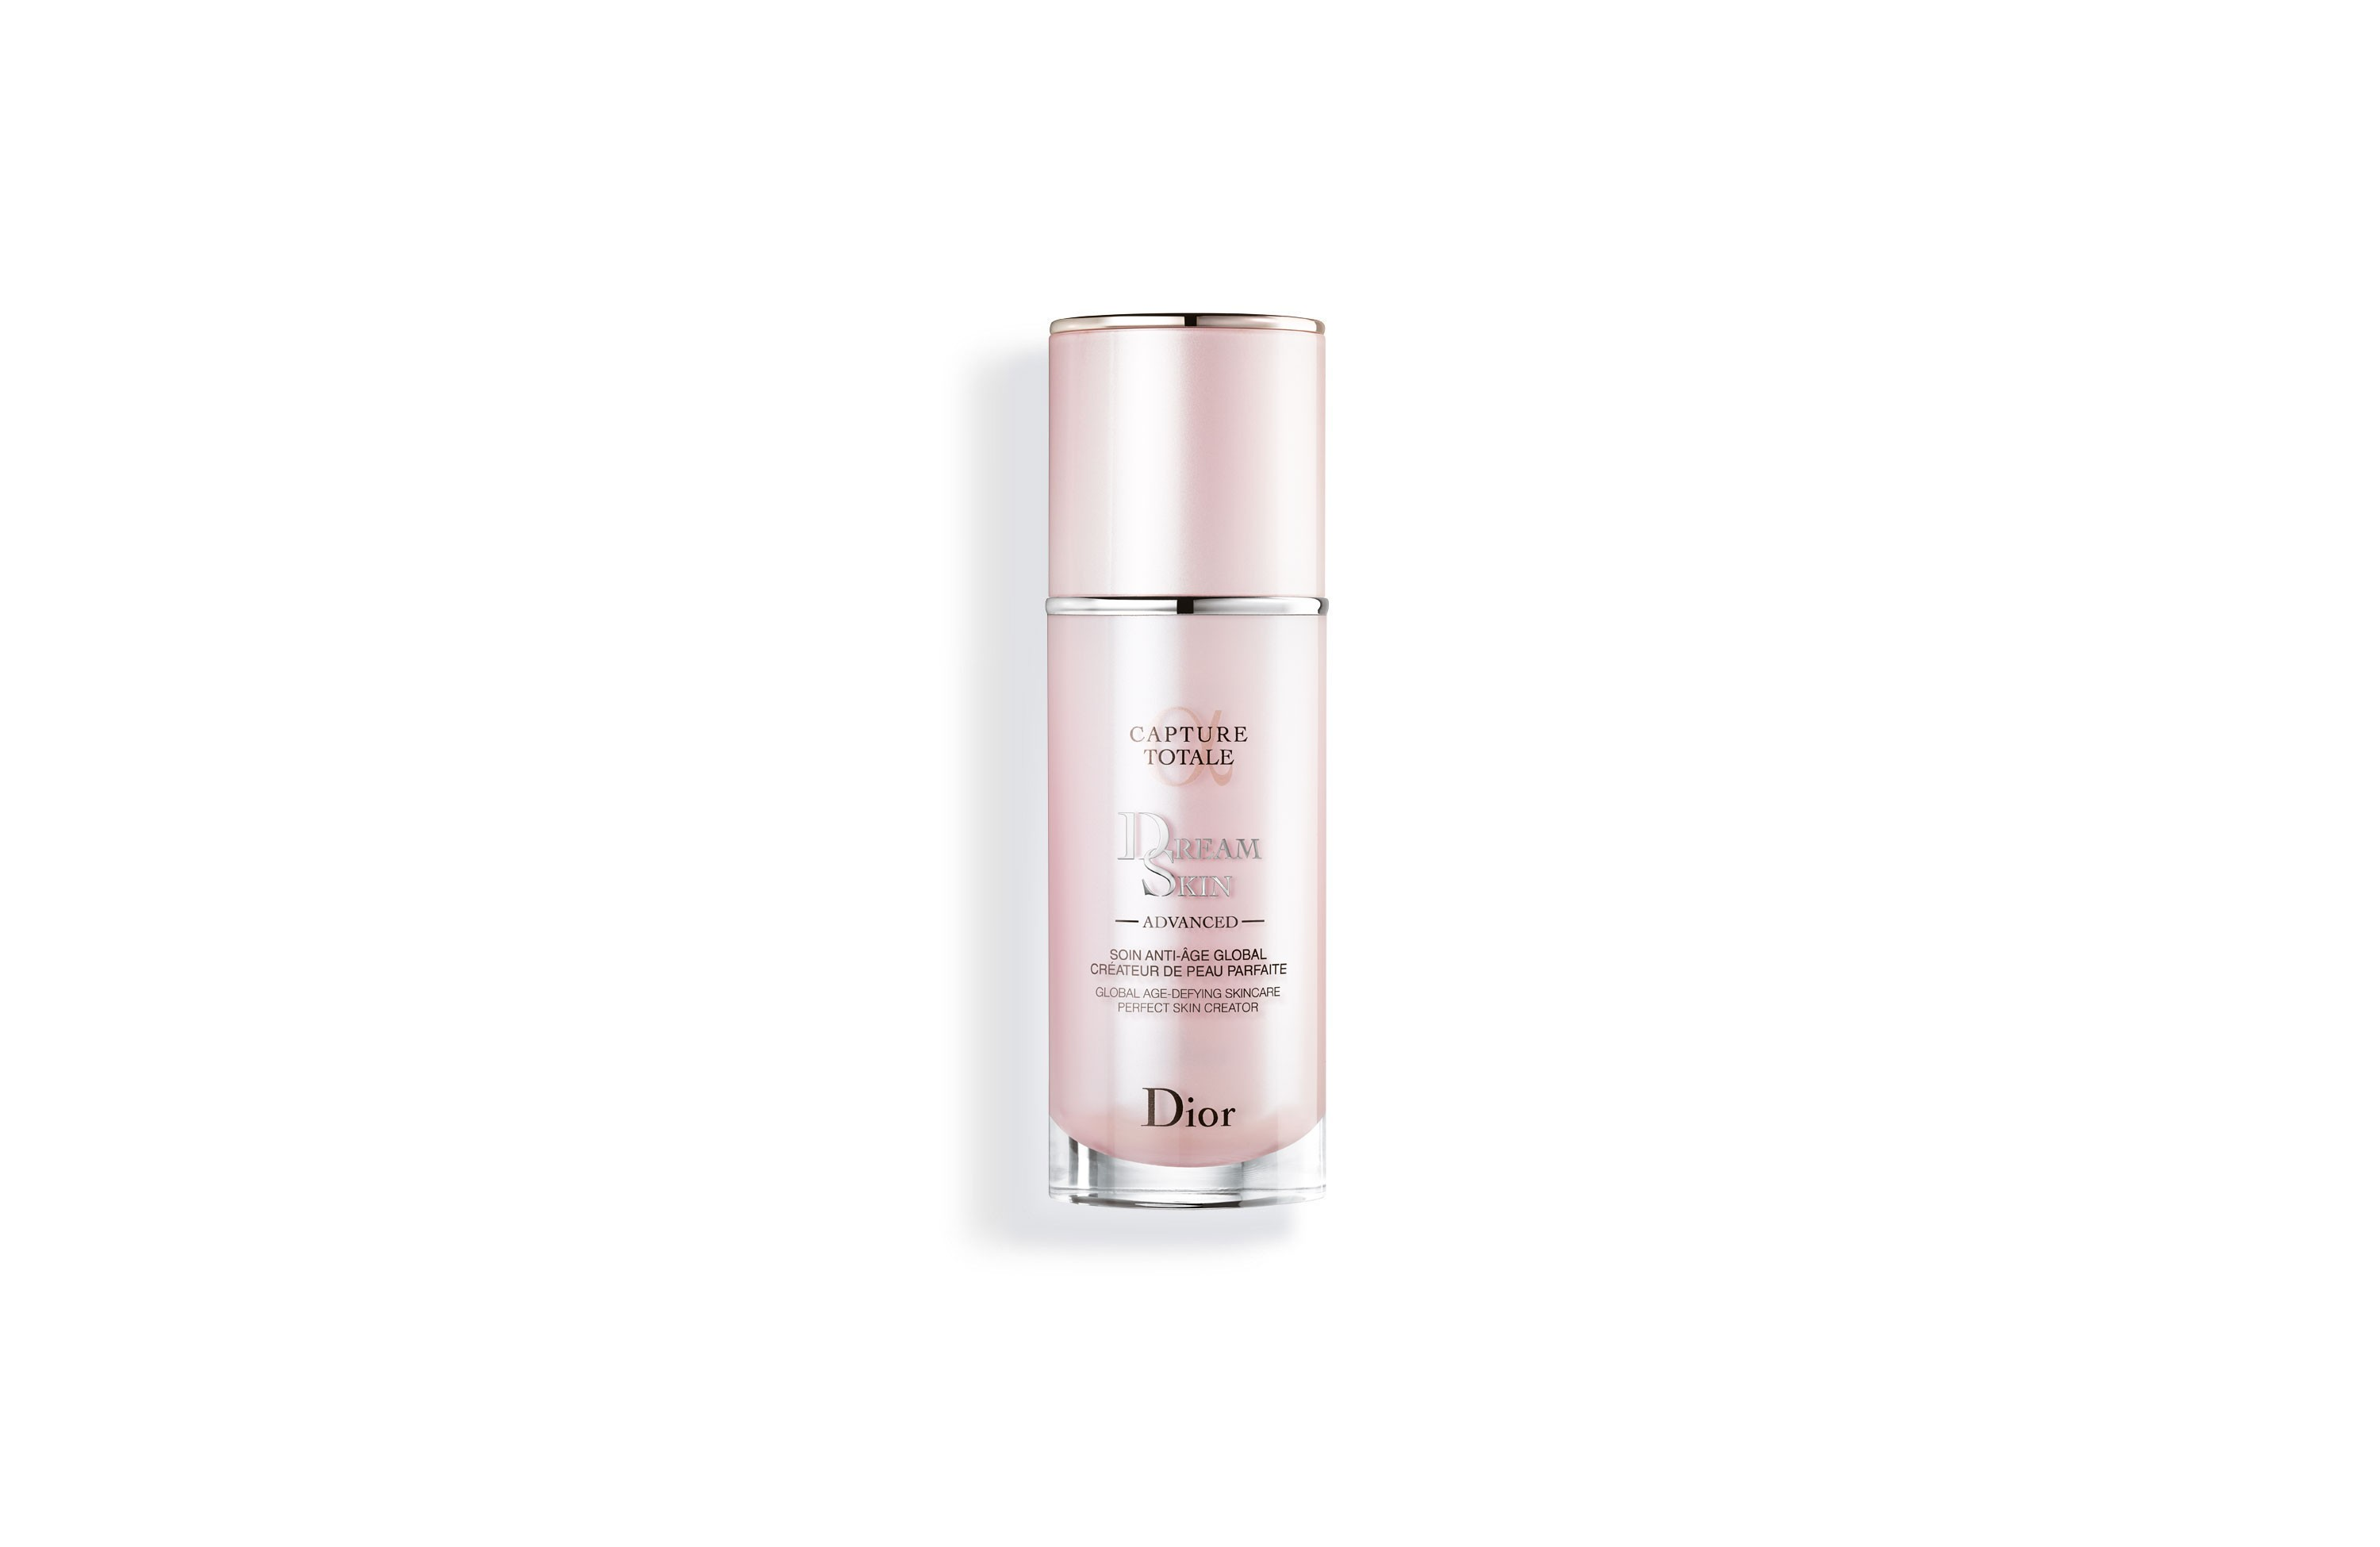 Dior Capture Totale Dreamskin Advanced - The Next-Generation Iconic Perfect Skin Creator